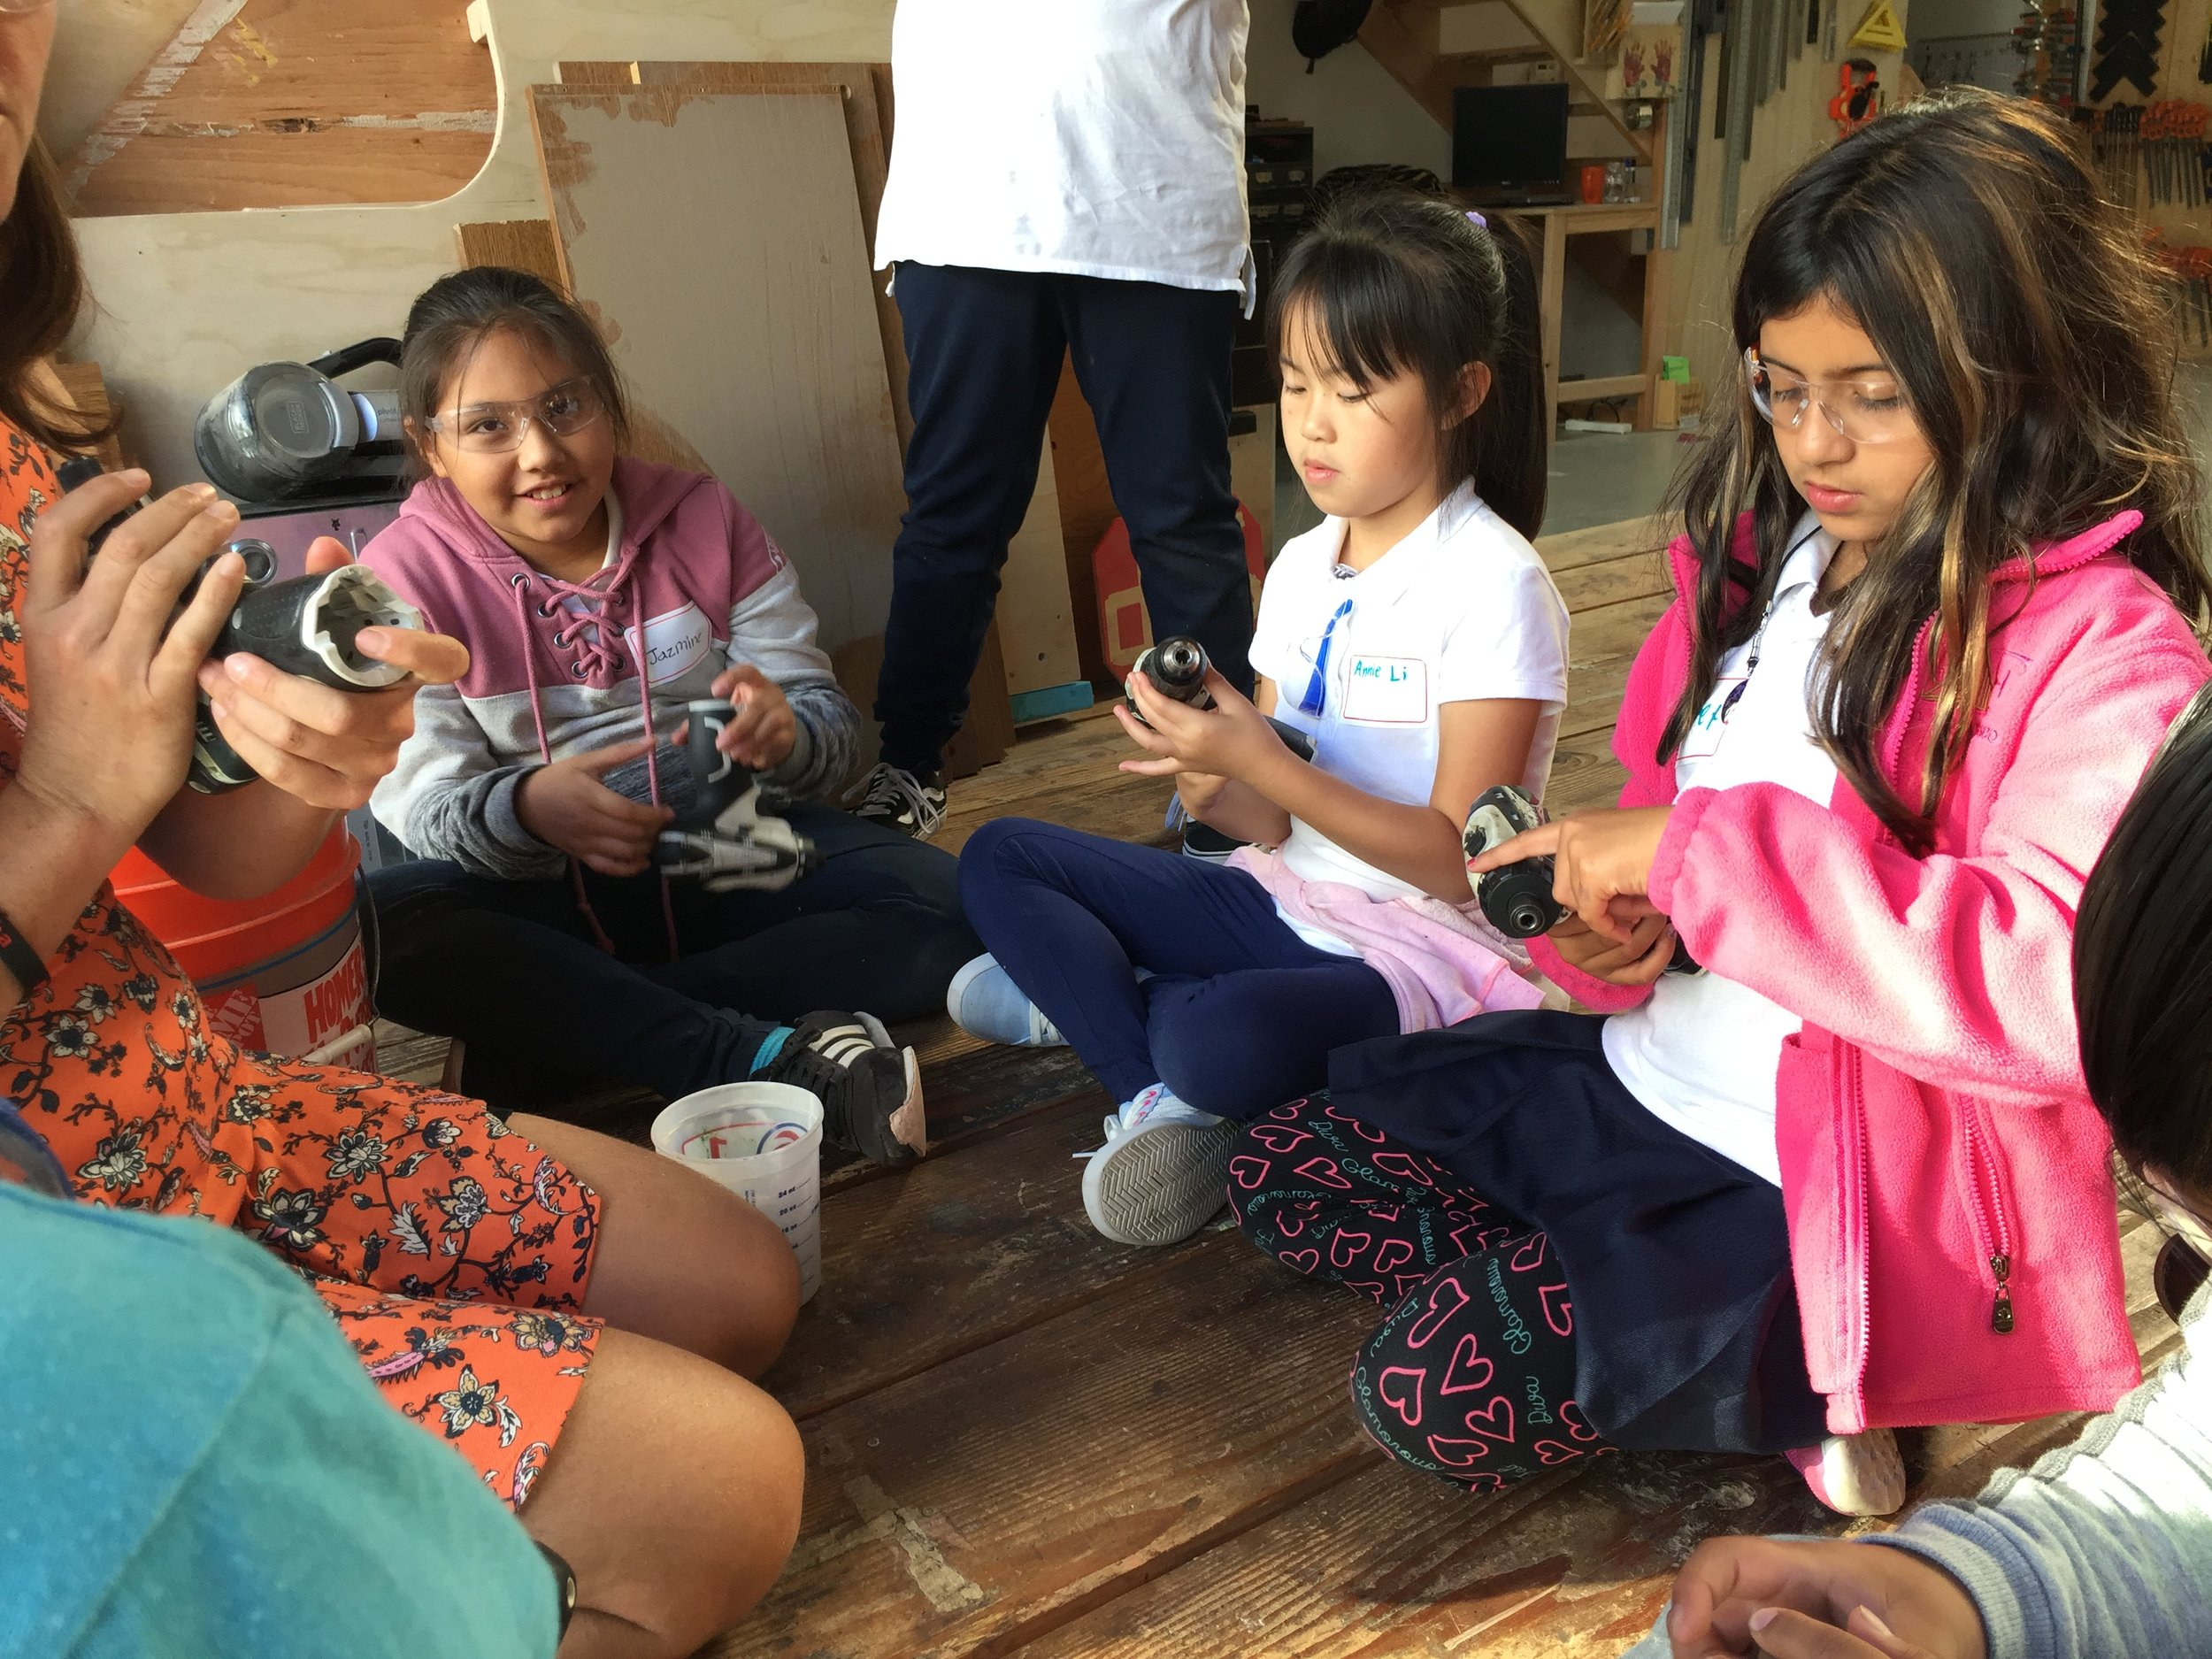 The kids inspected their drills first without batteries. They learned what the many buttons do as well as how to insert and remove drill and screw bits.